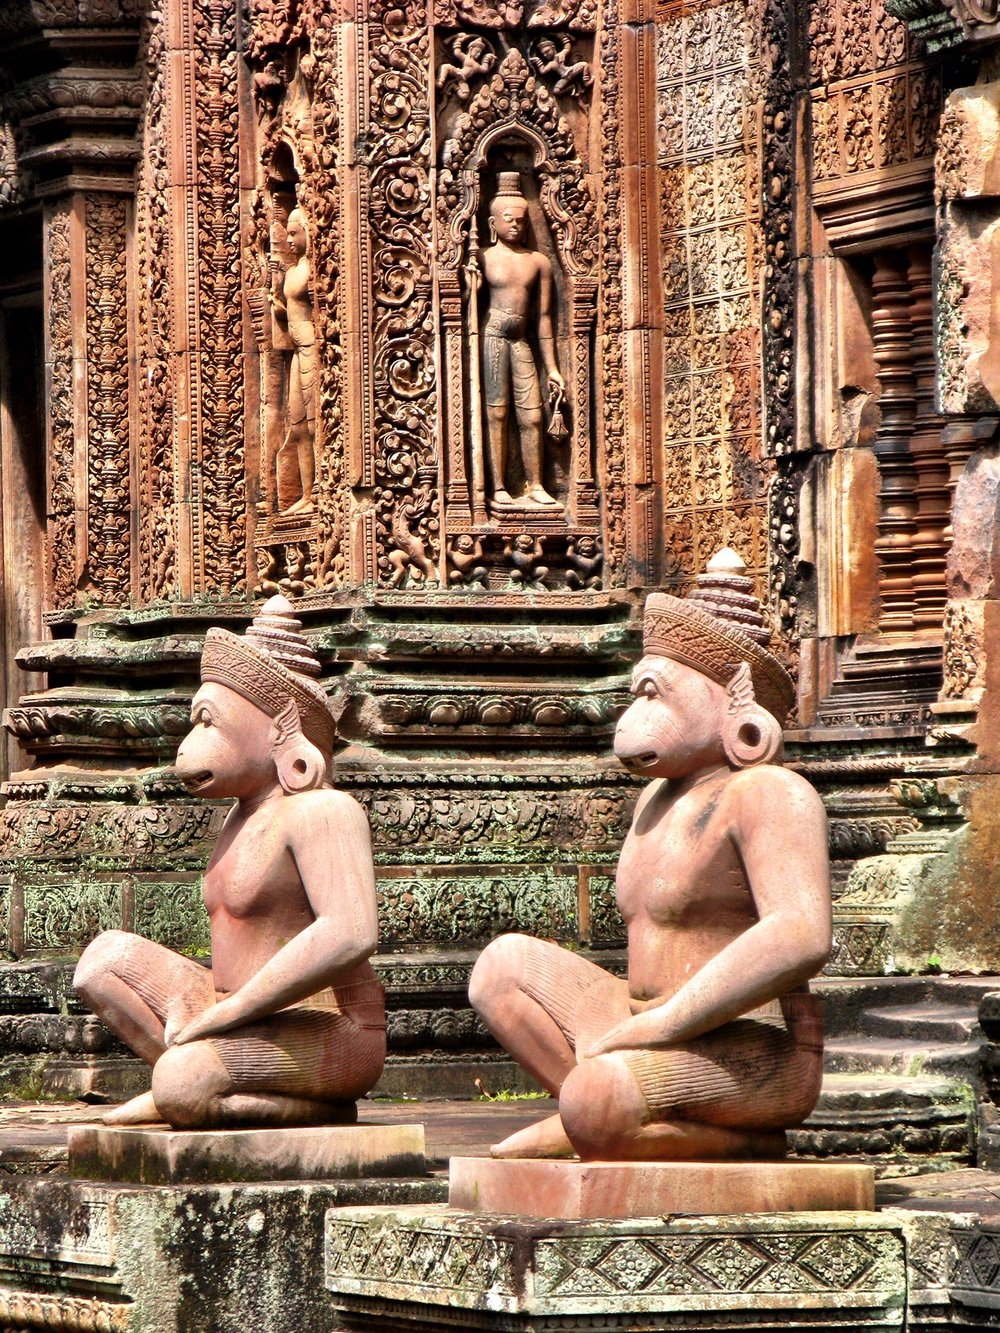 Gods called devatas pose in niches, guarded by animal-headed warriors